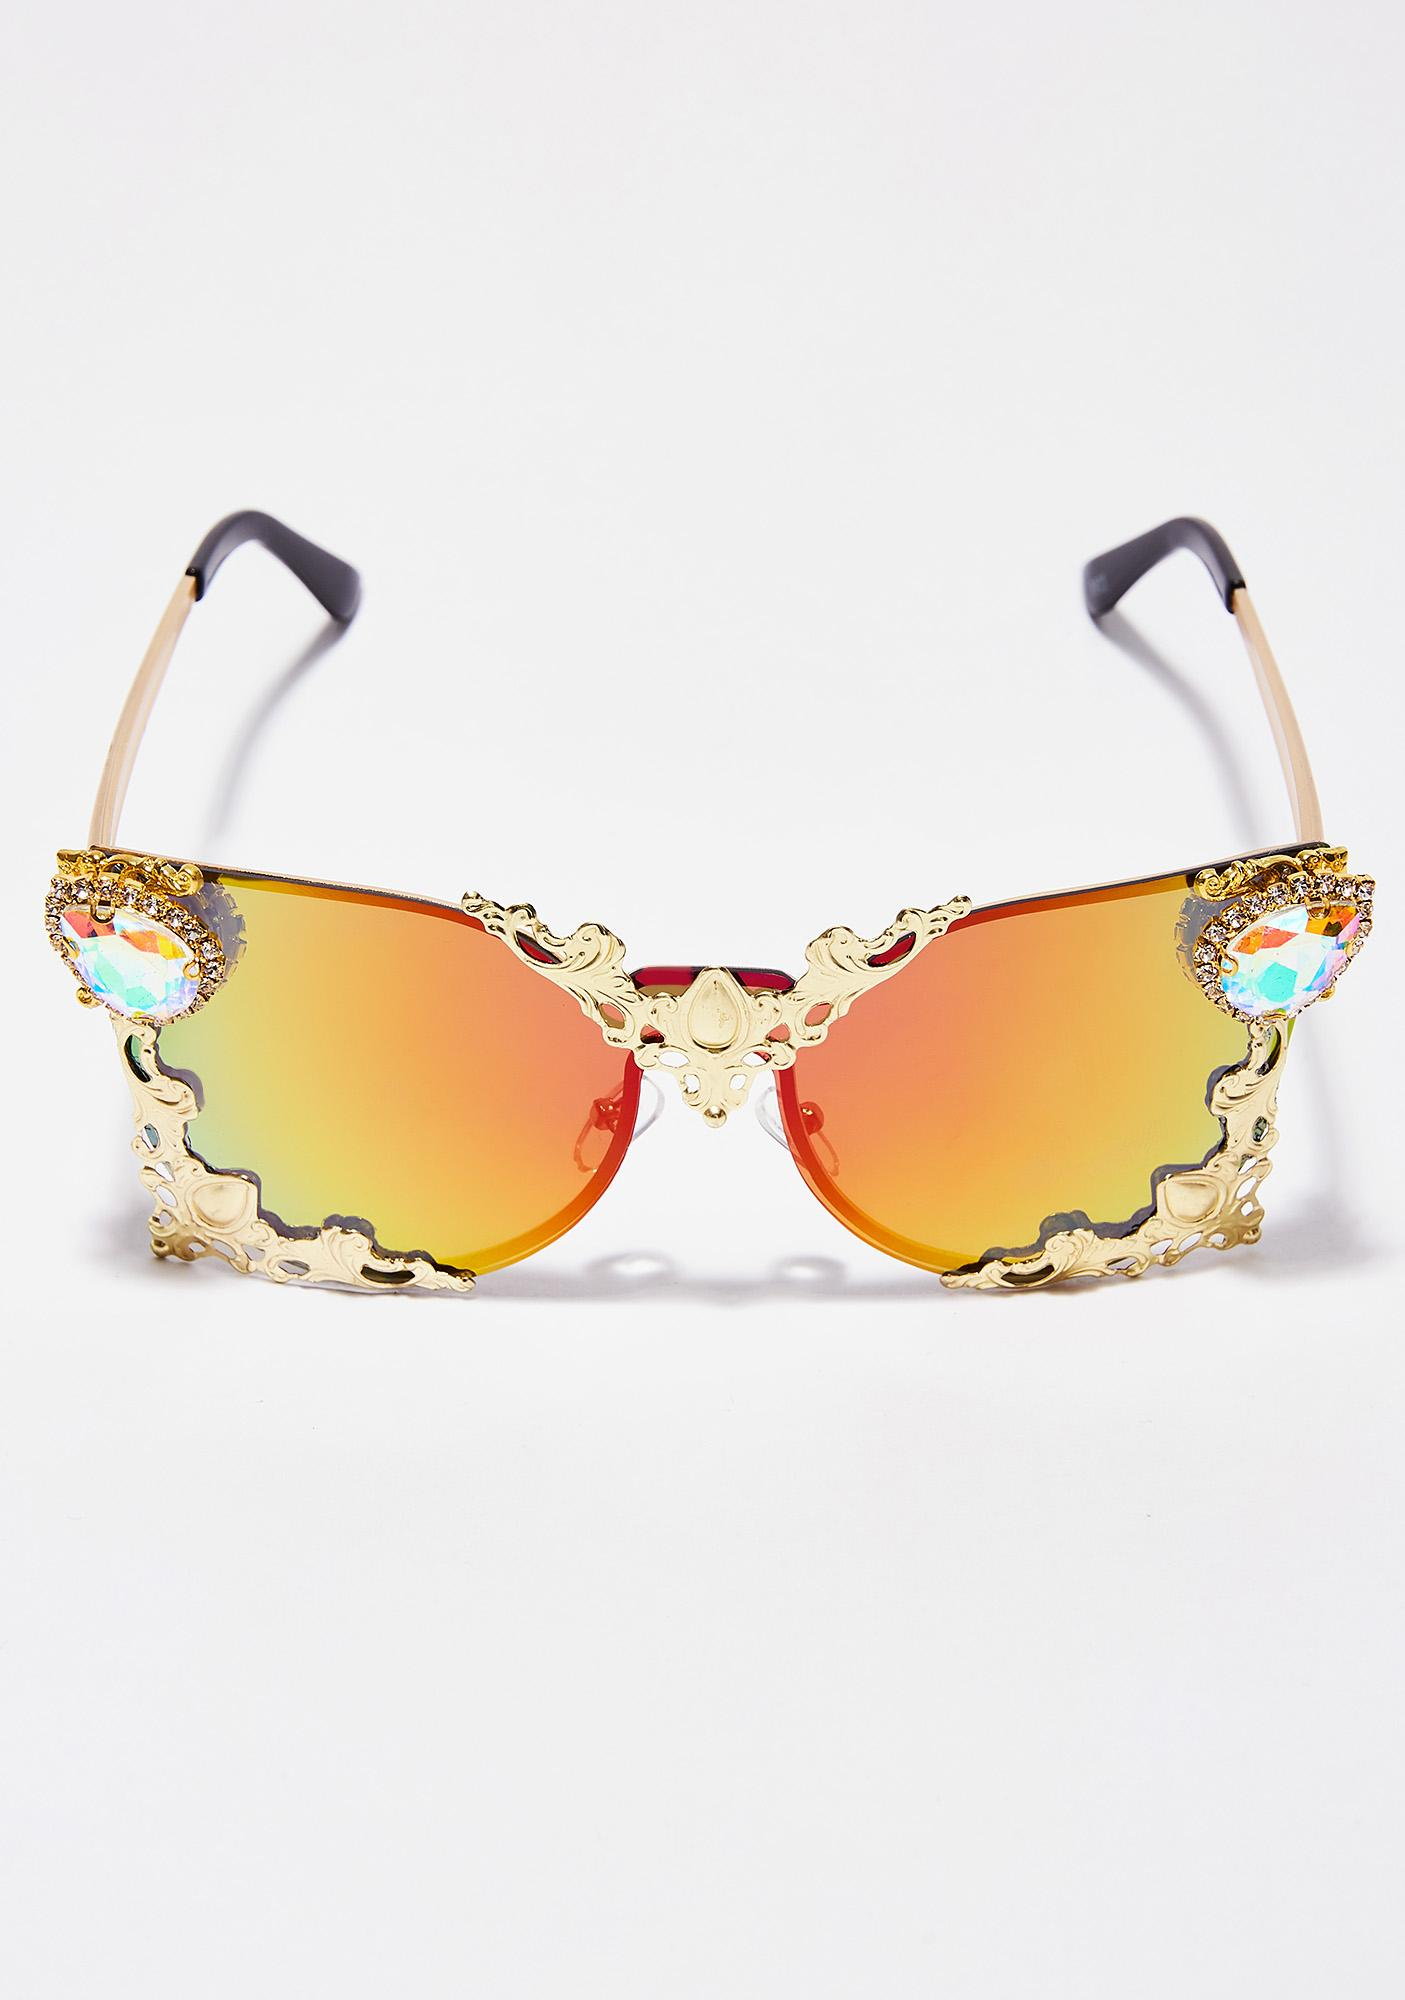 The Lyte Couture Del Rey Sunnies